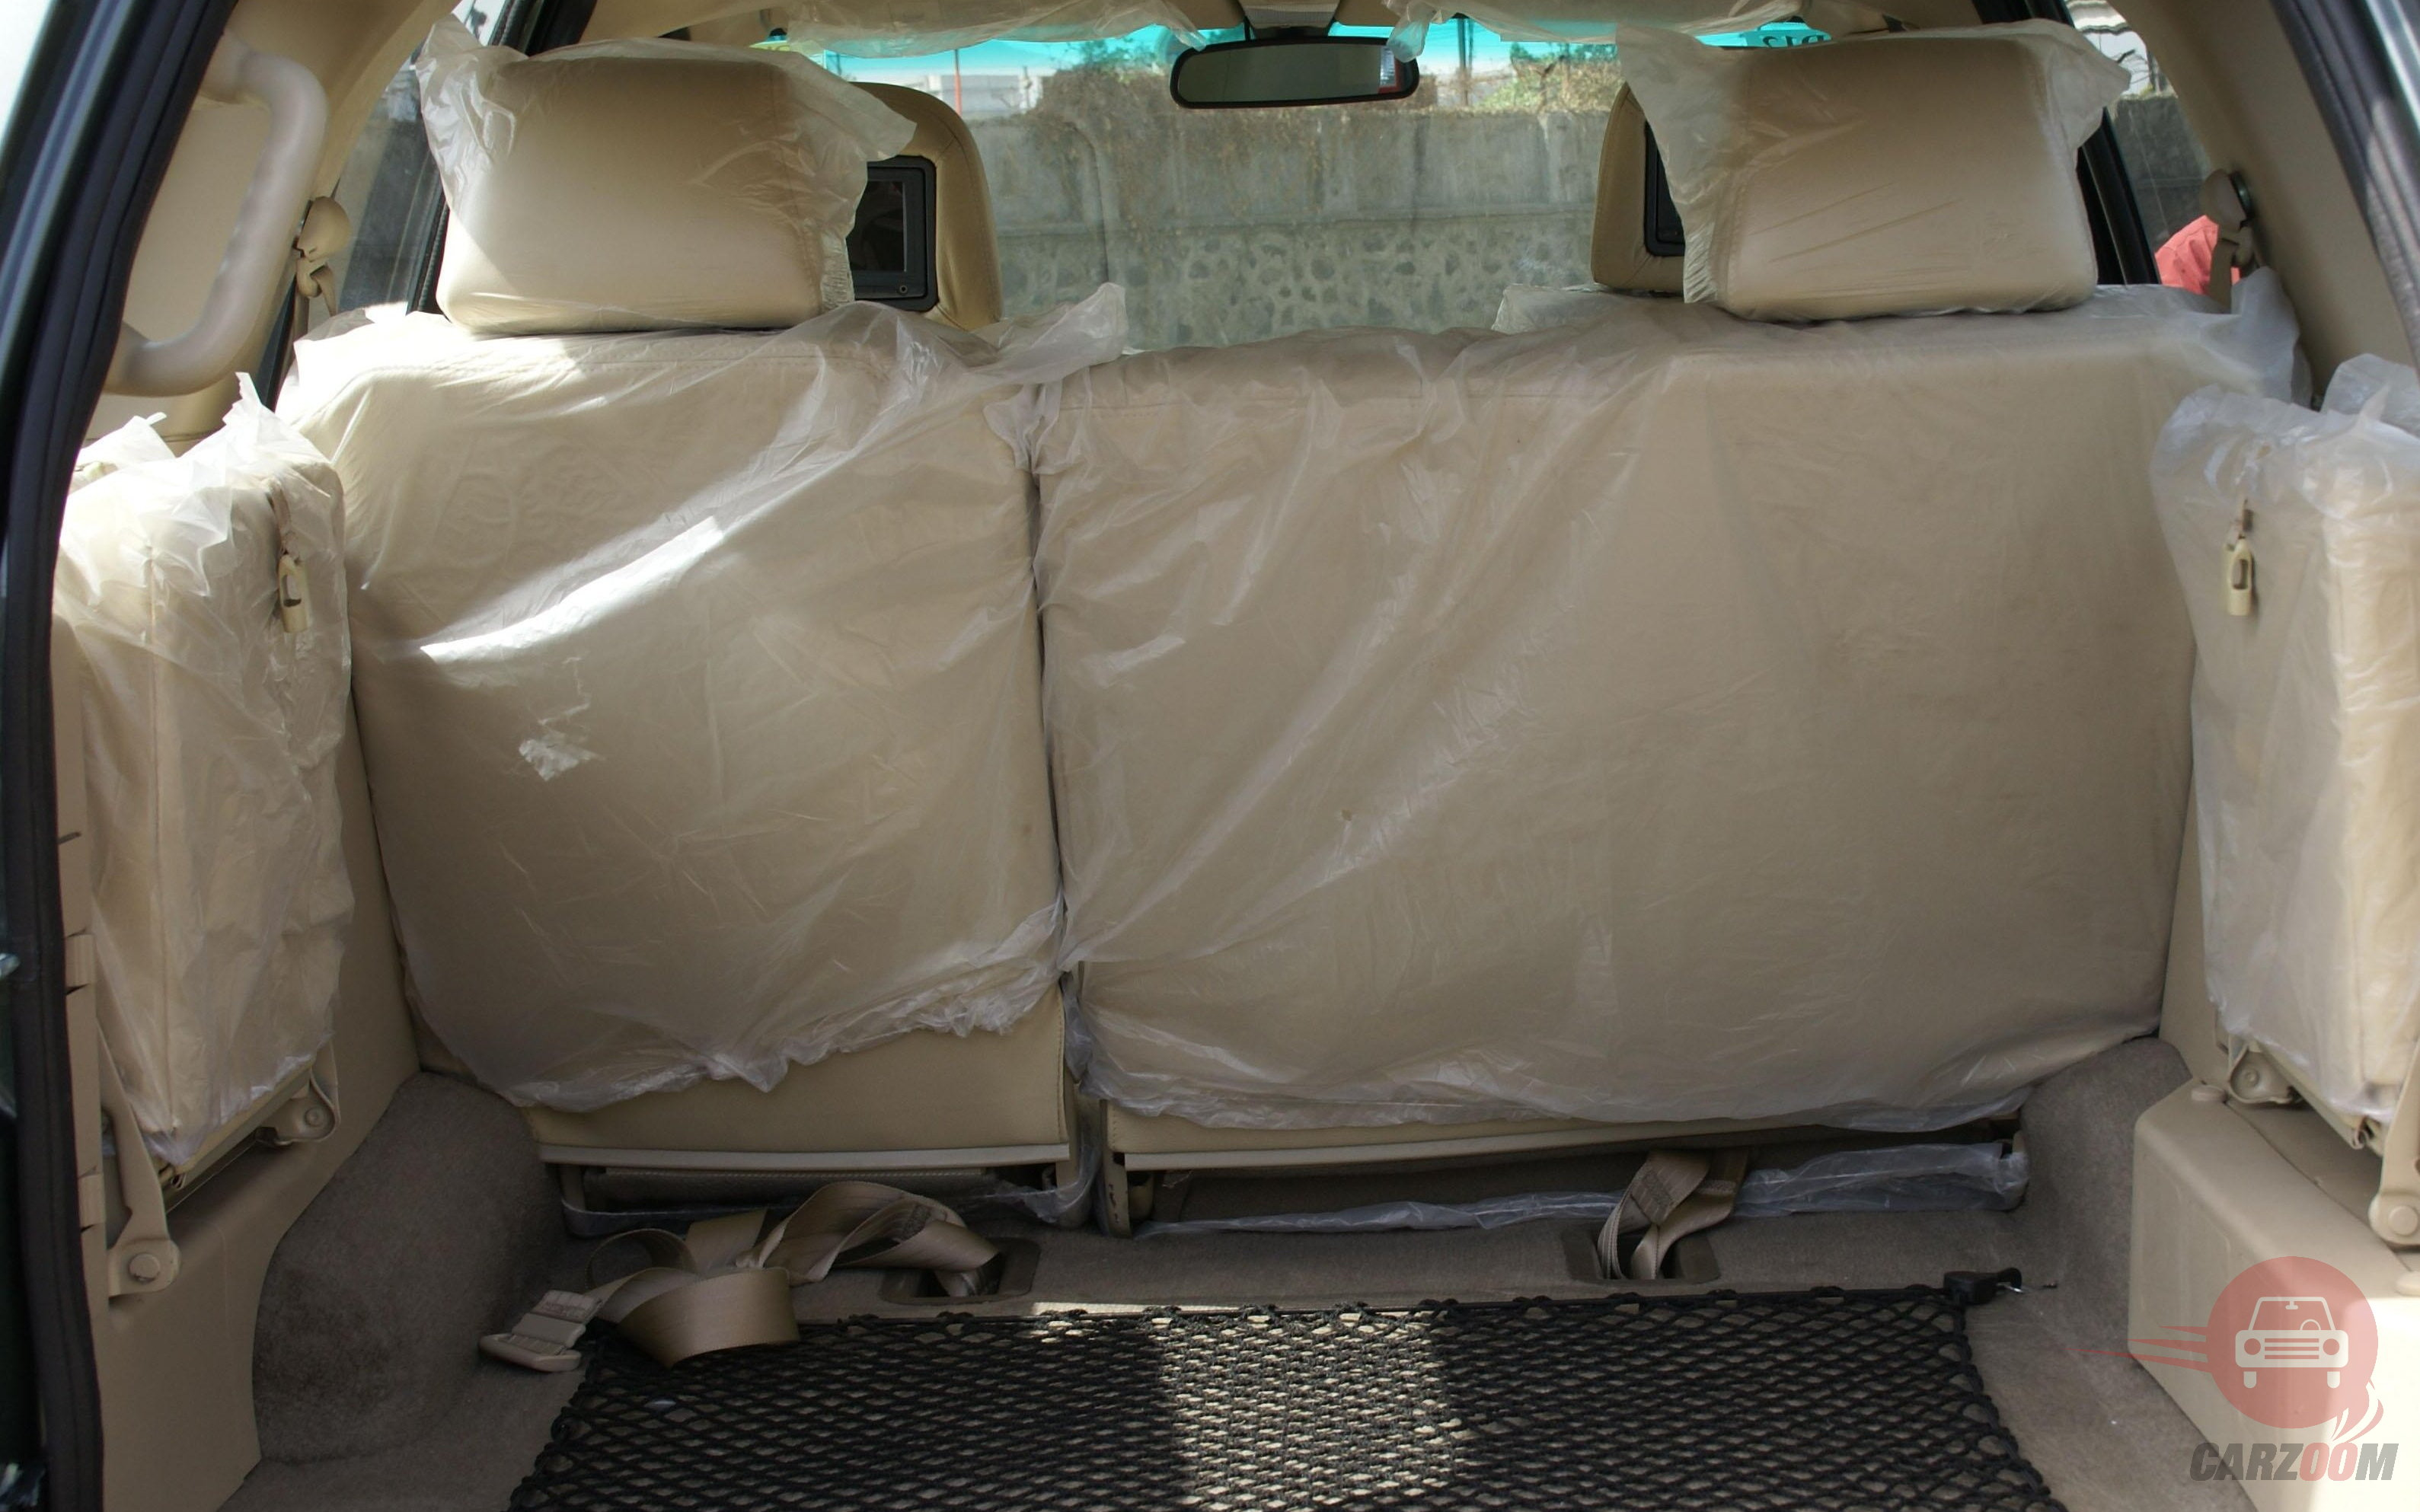 Tata Safari DICOR Interiors Bootspace